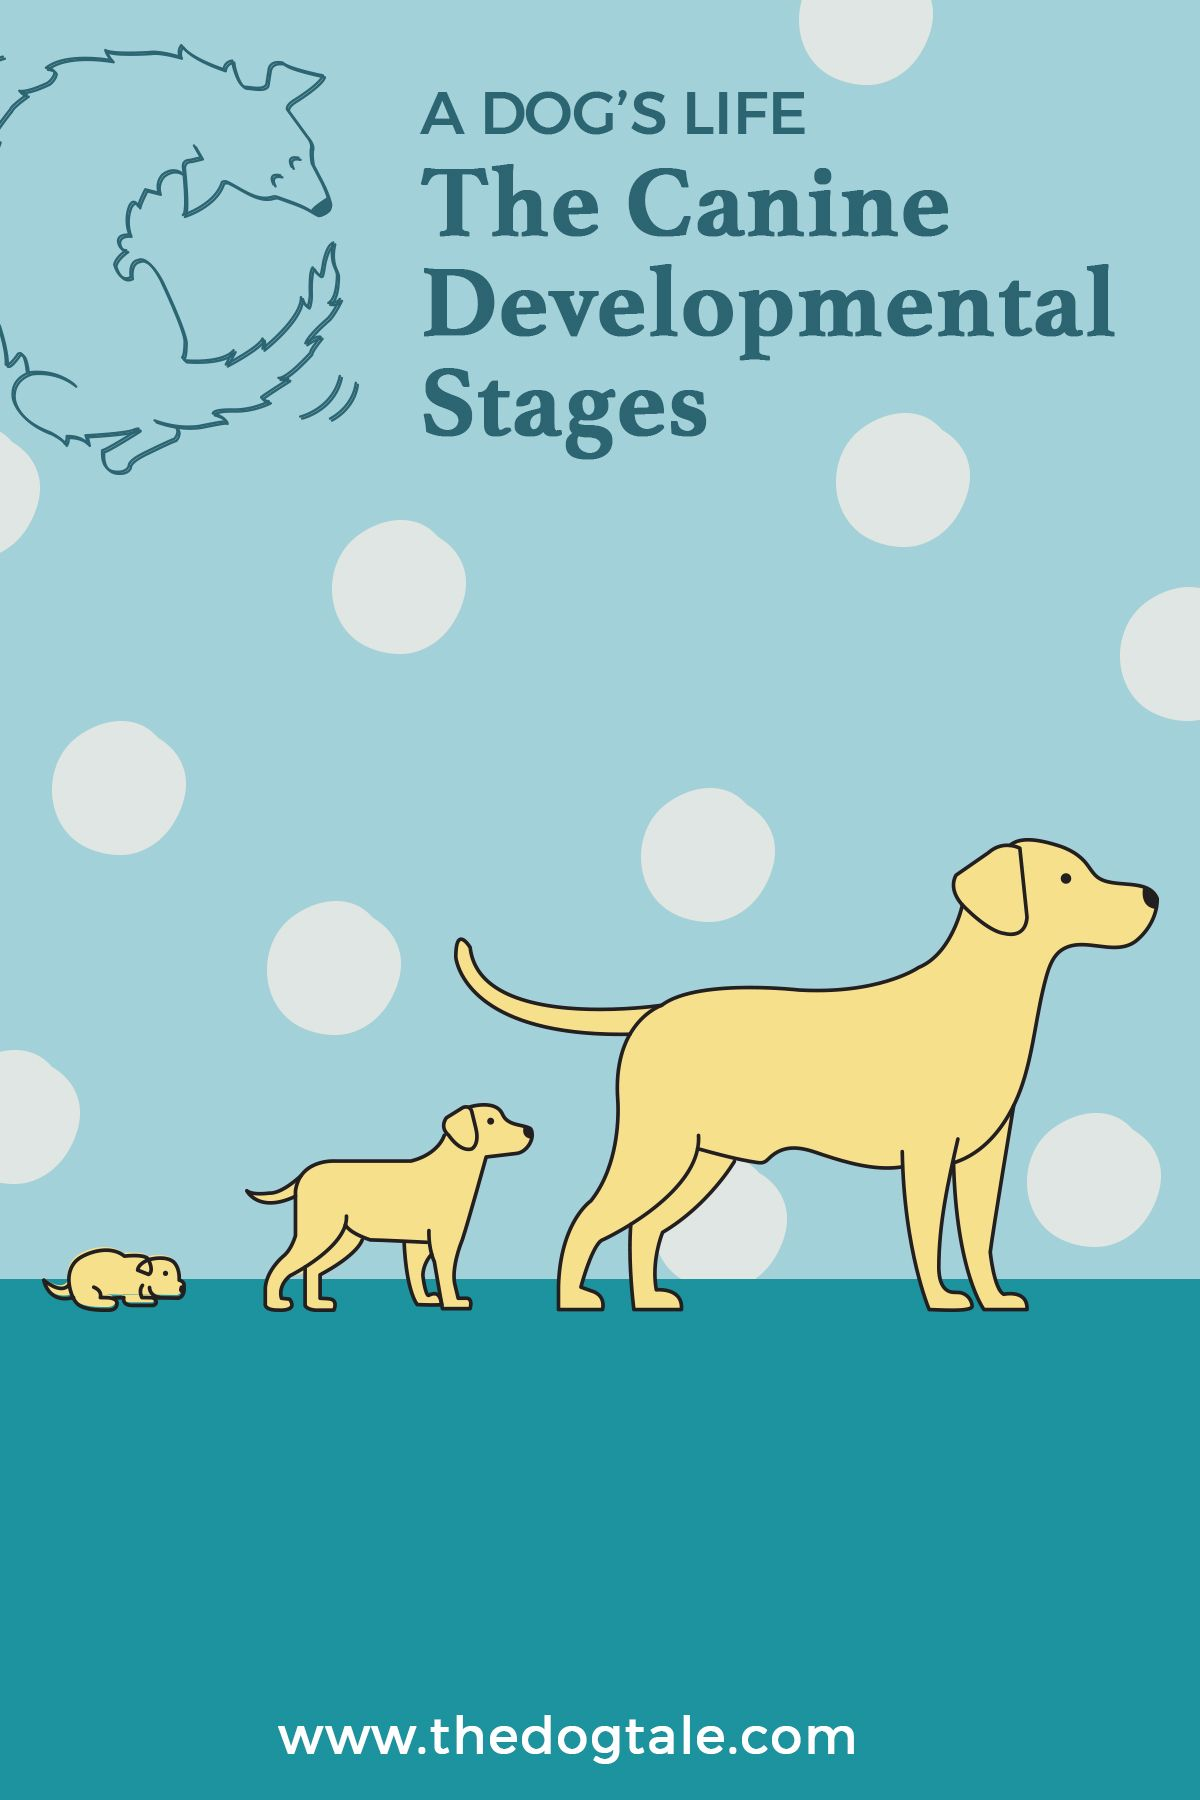 A Dog's Life The Canine Developmental Stages in 2020